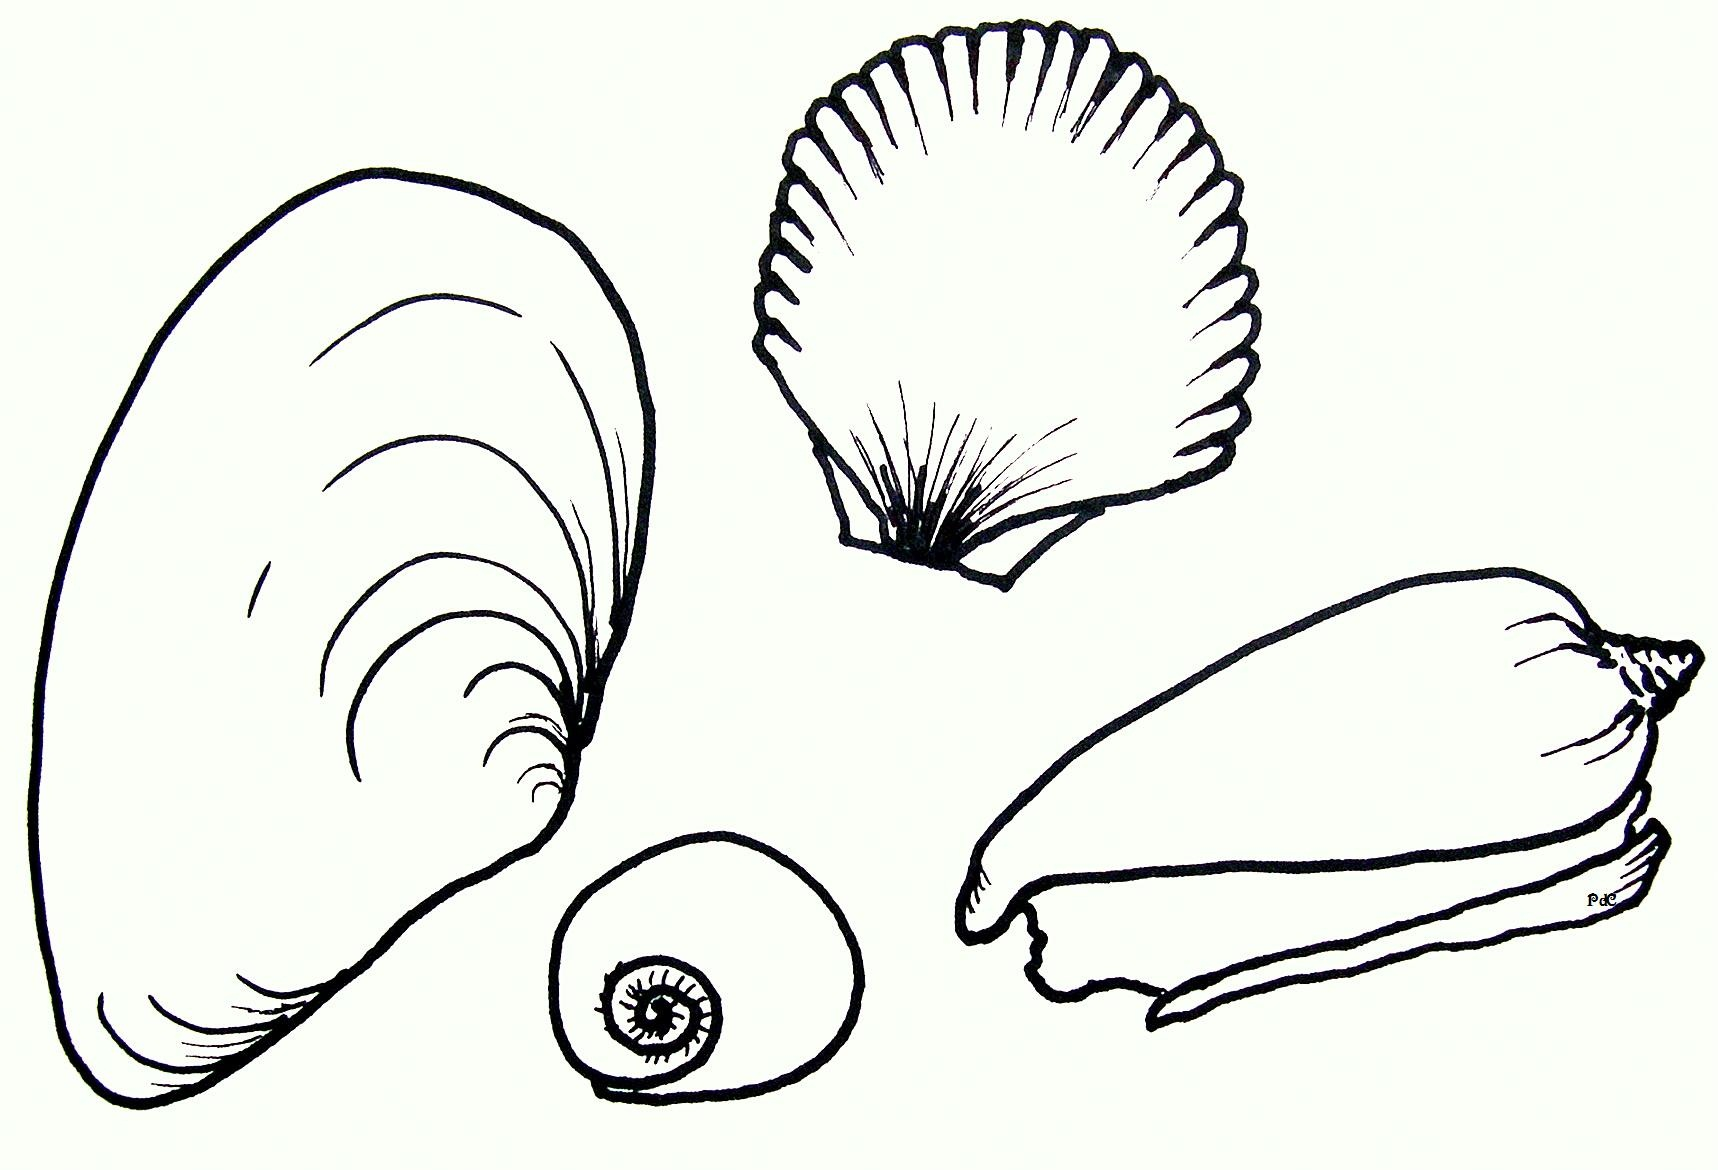 snail coloring page funny shell coloring page sea shell coloring